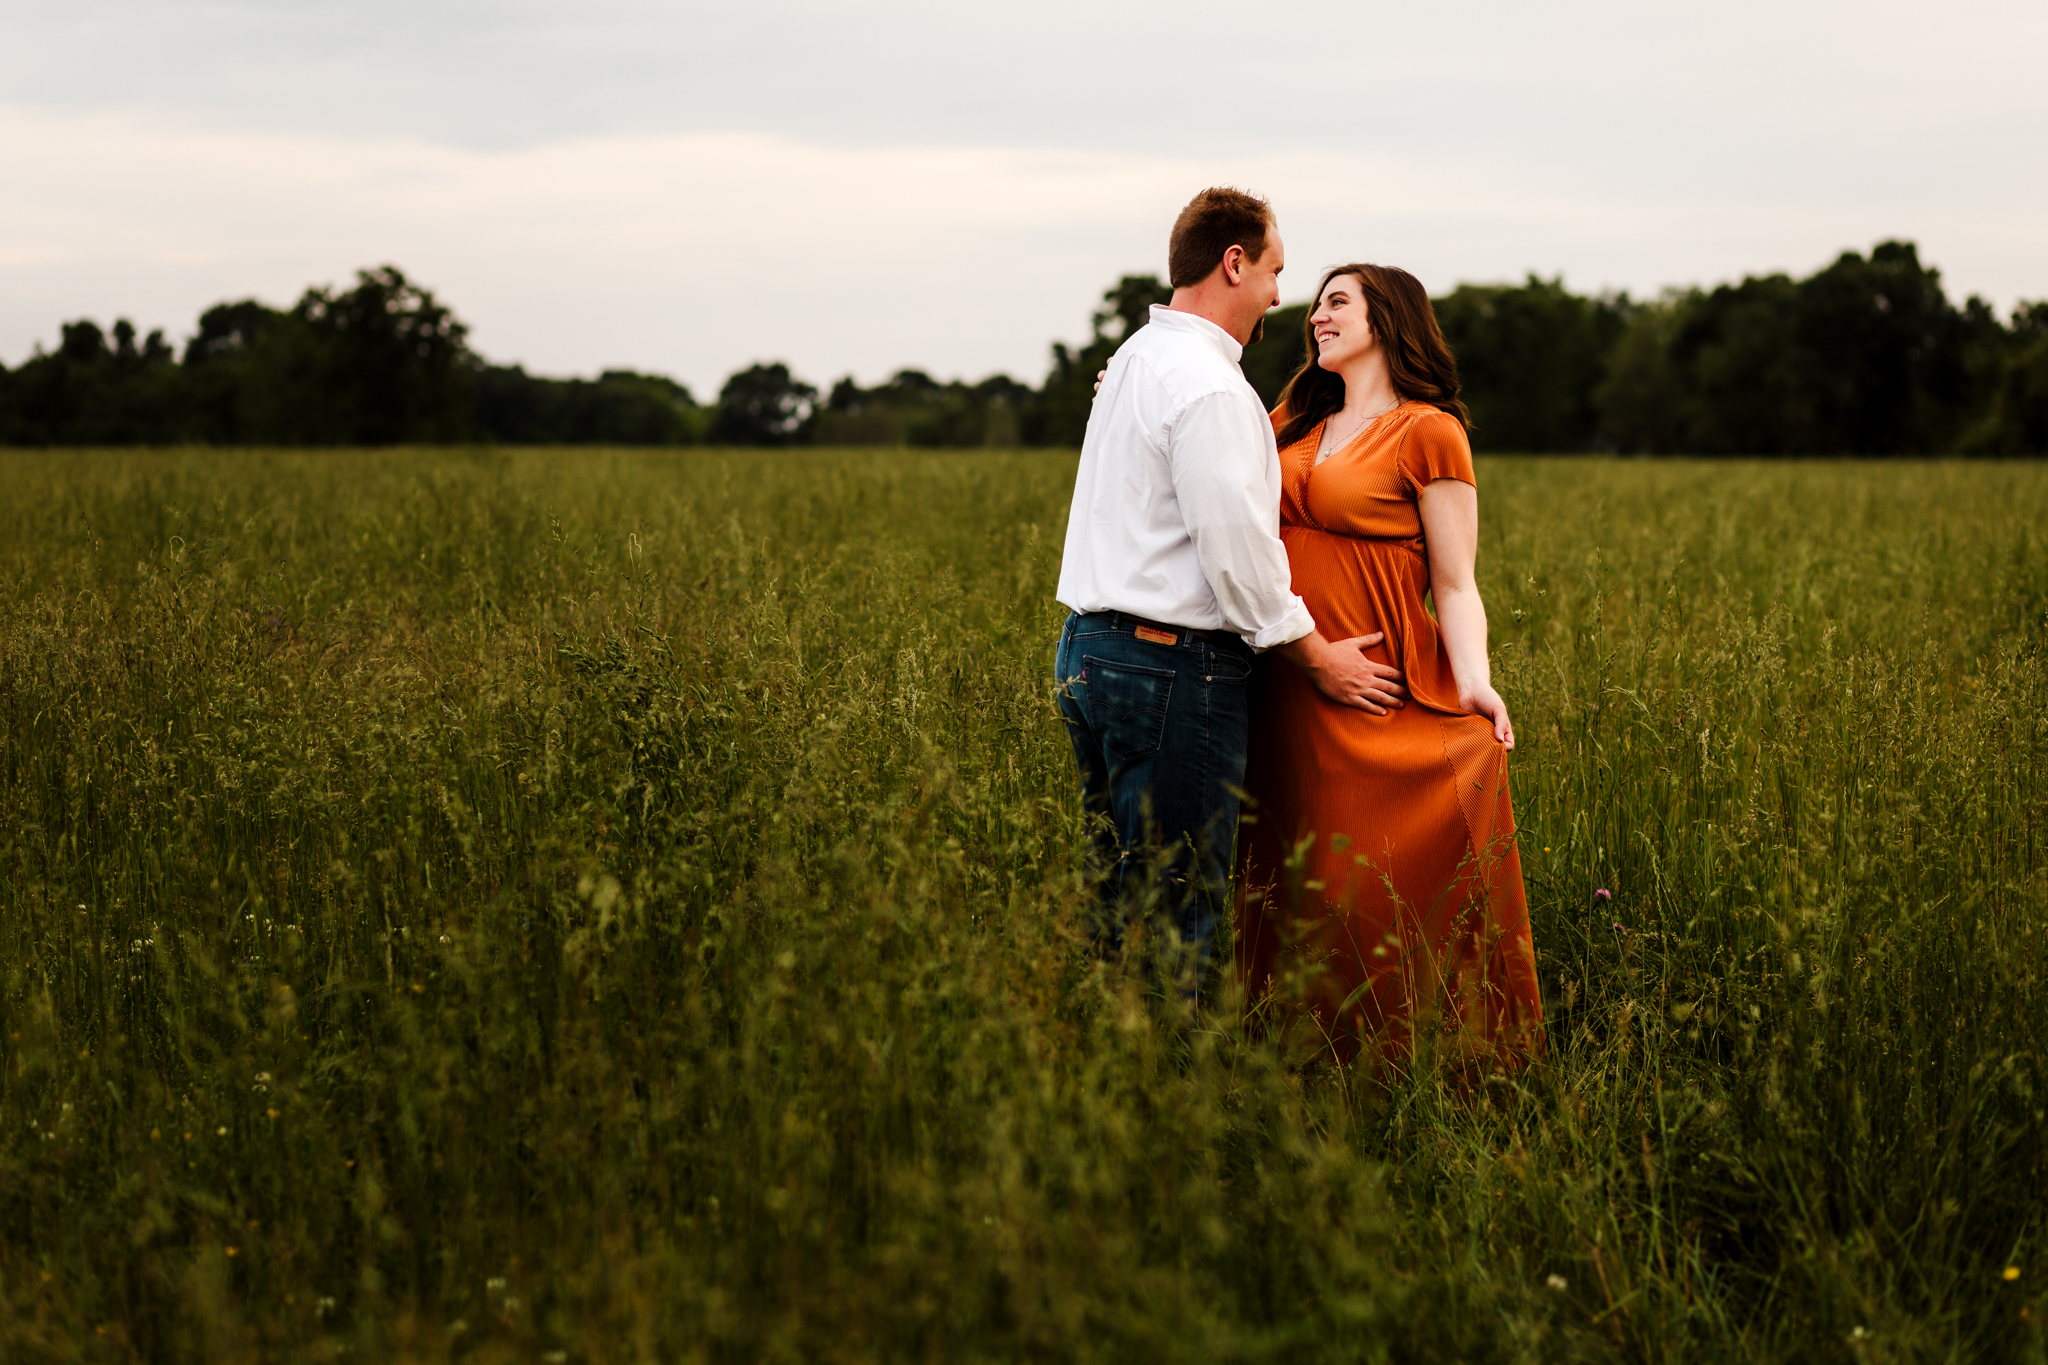 pregnant woman looking at her husband while holding maternity gown in overgrown field